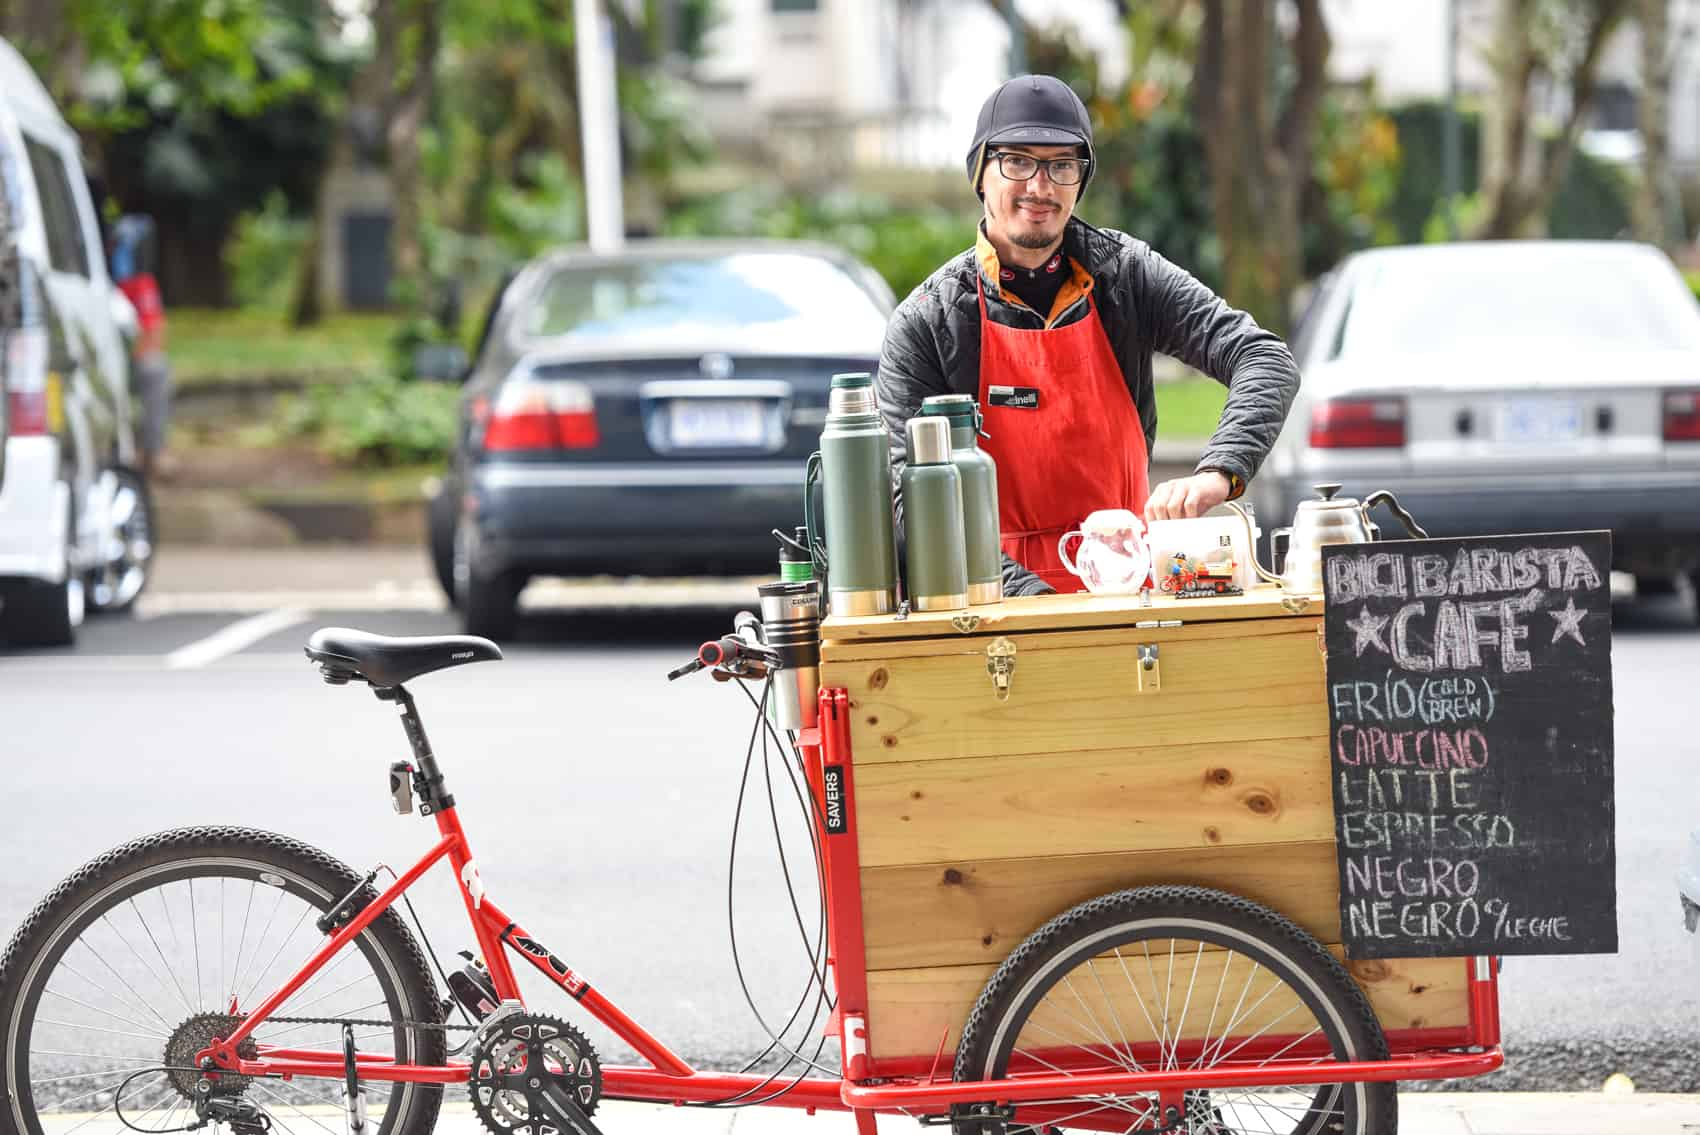 Marinoni has been serving good quality coffee from his bike for a year.